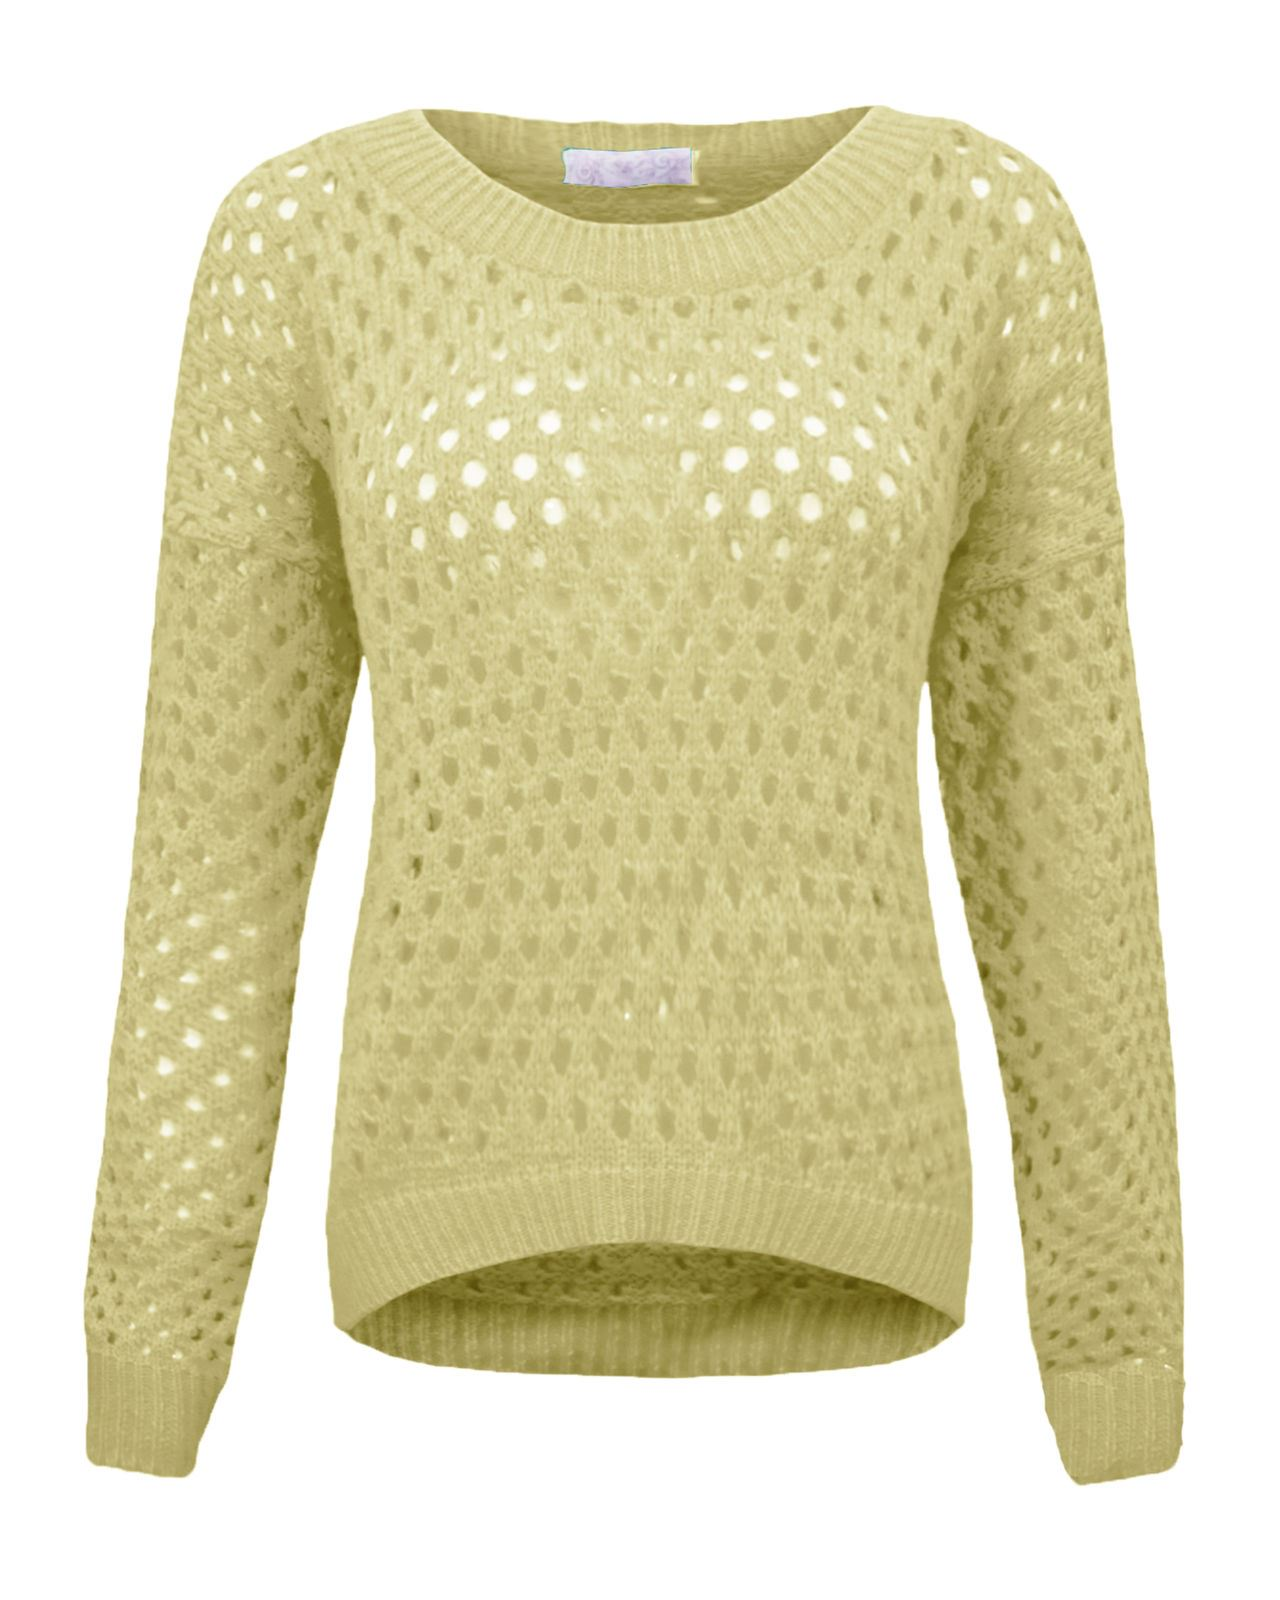 LADIES WOMENS HOLEY KNIT JUMPER STRETCH SWEATER CREW NECK LONG SLEEVES TOP 8-...